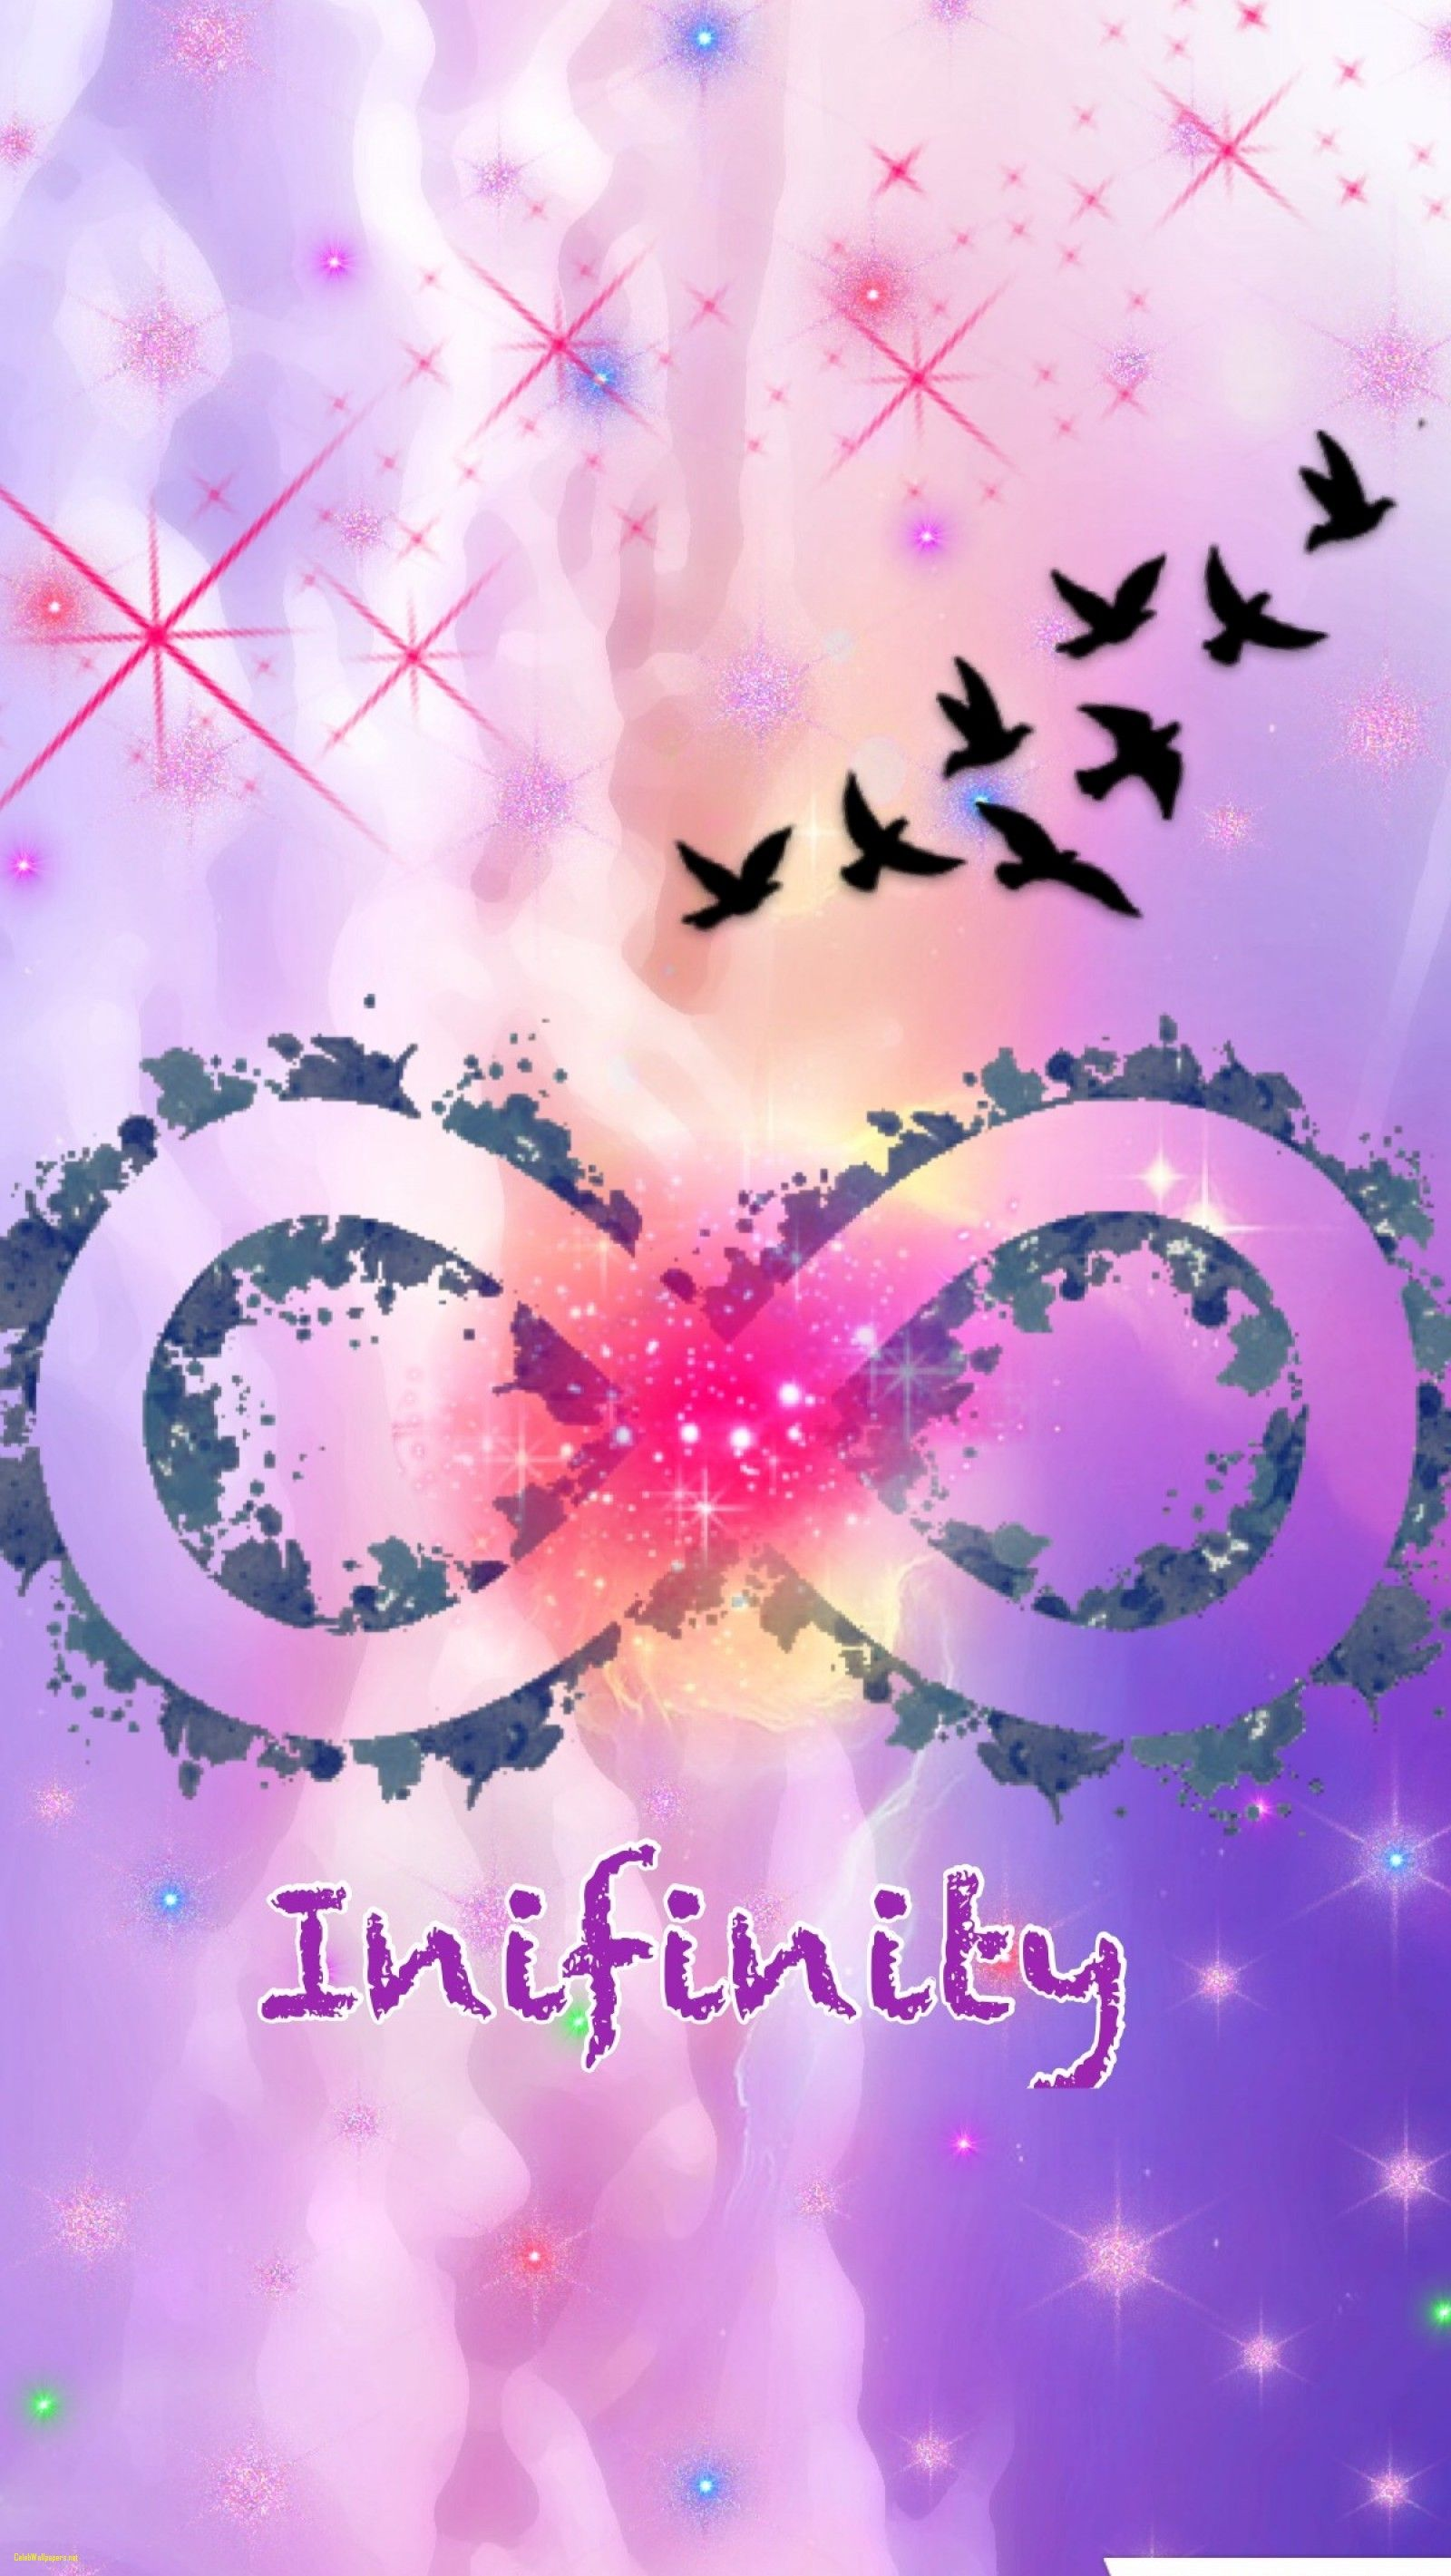 Galaxy Infinity Wallpapers - Top Free Galaxy Infinity